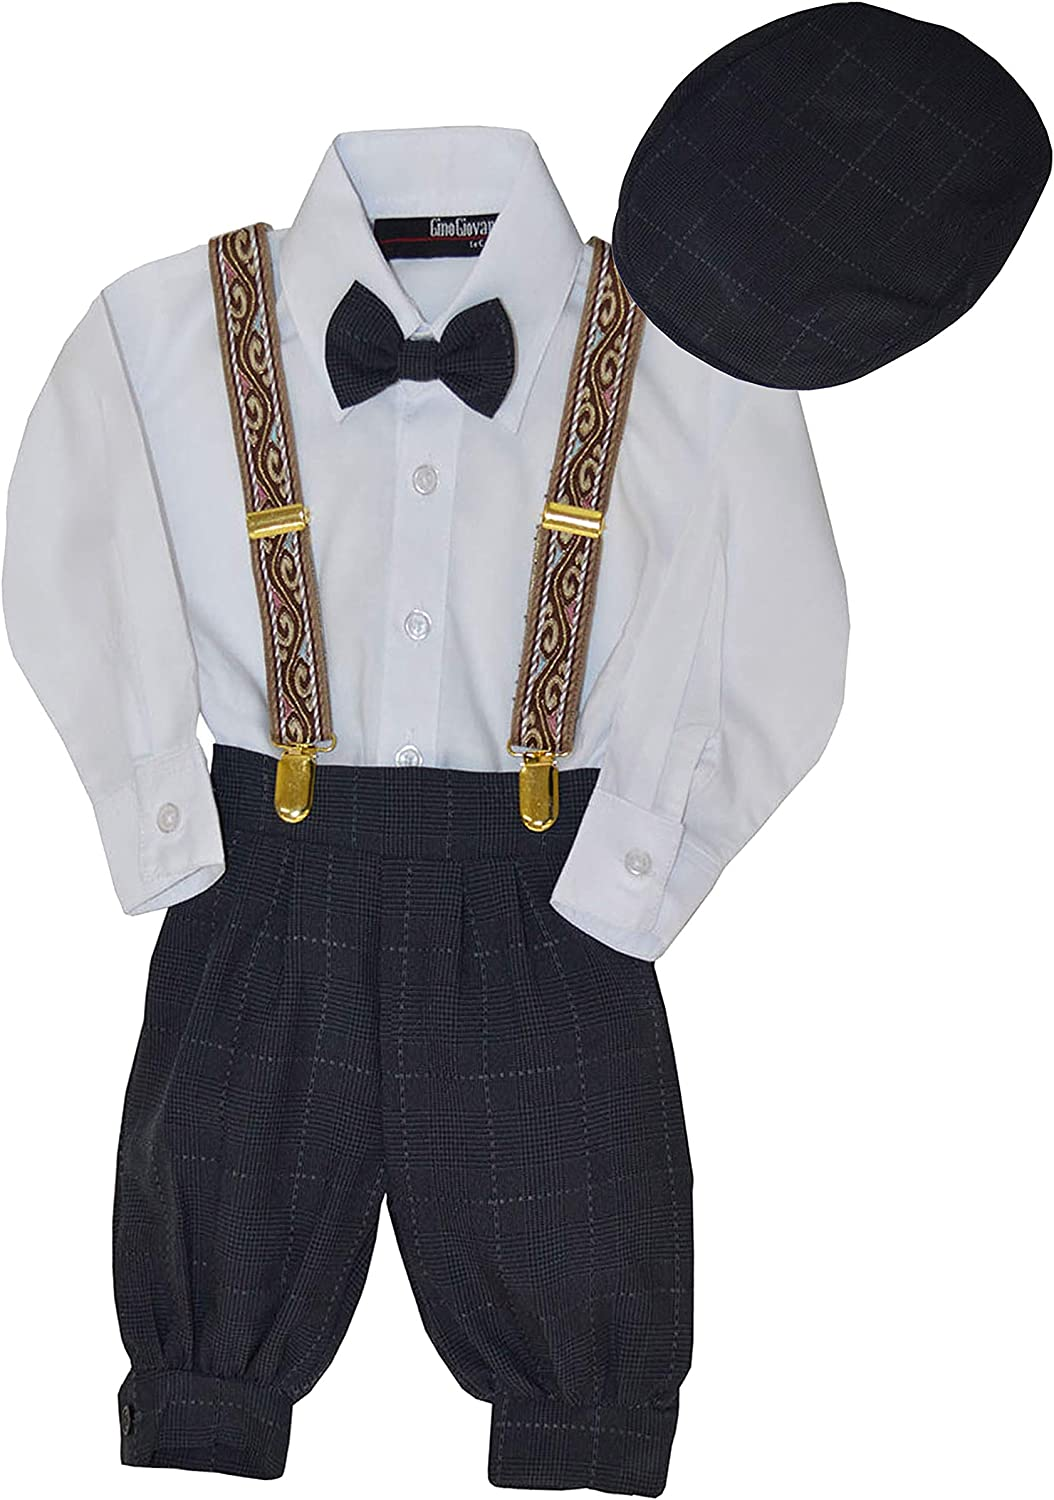 G284 Gino Giovanni Baby Boys Vintage Style Knickers Outfit Suspenders Set